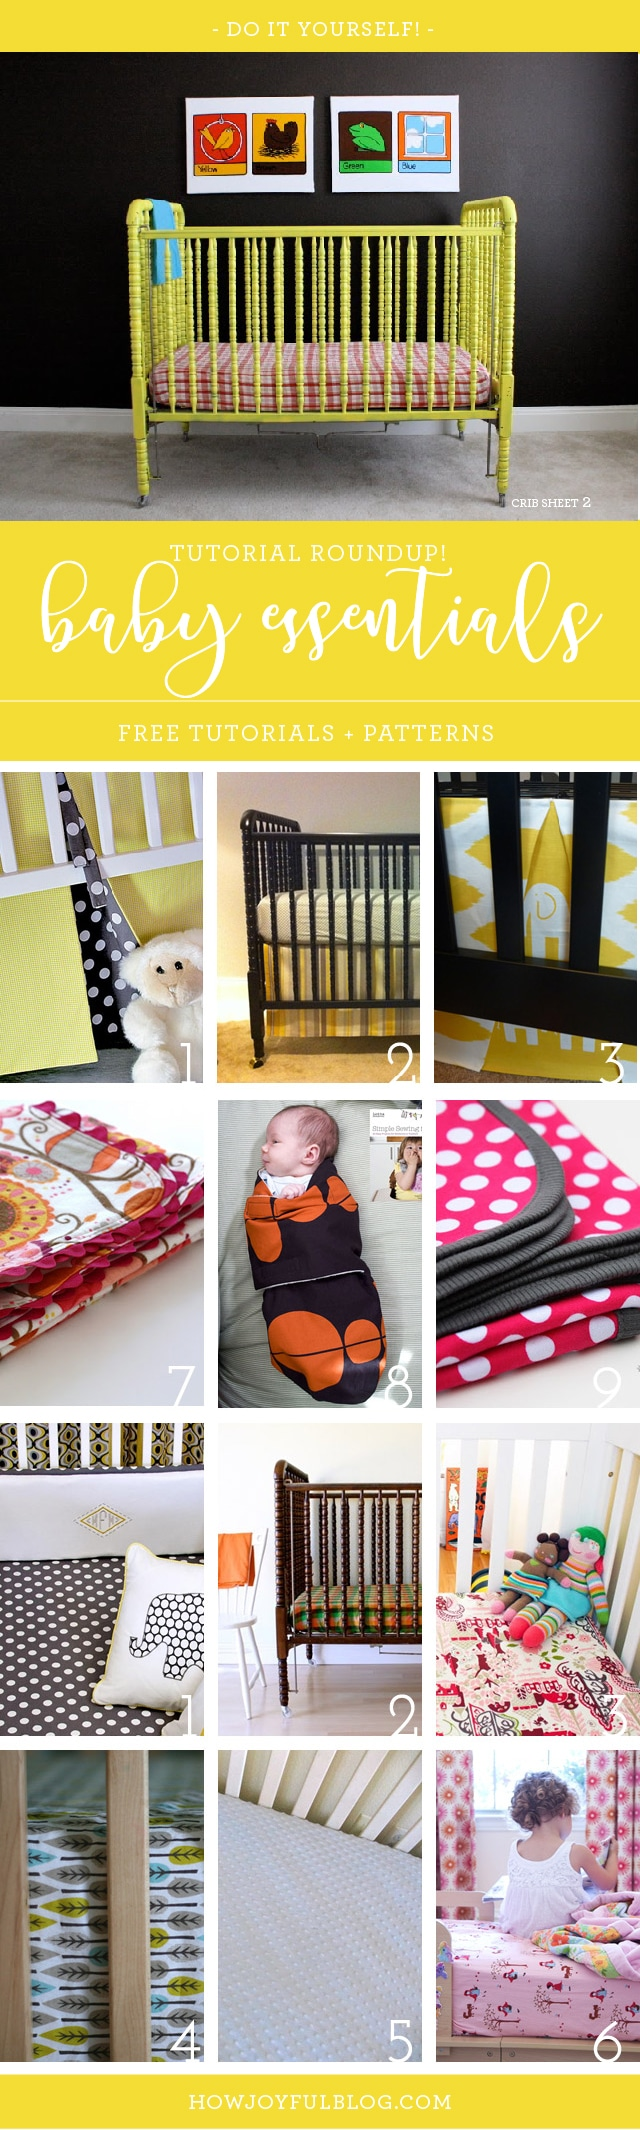 How to sew a crib bedding and nursery essentials - Sewing tutorials roundup by @howjoyful